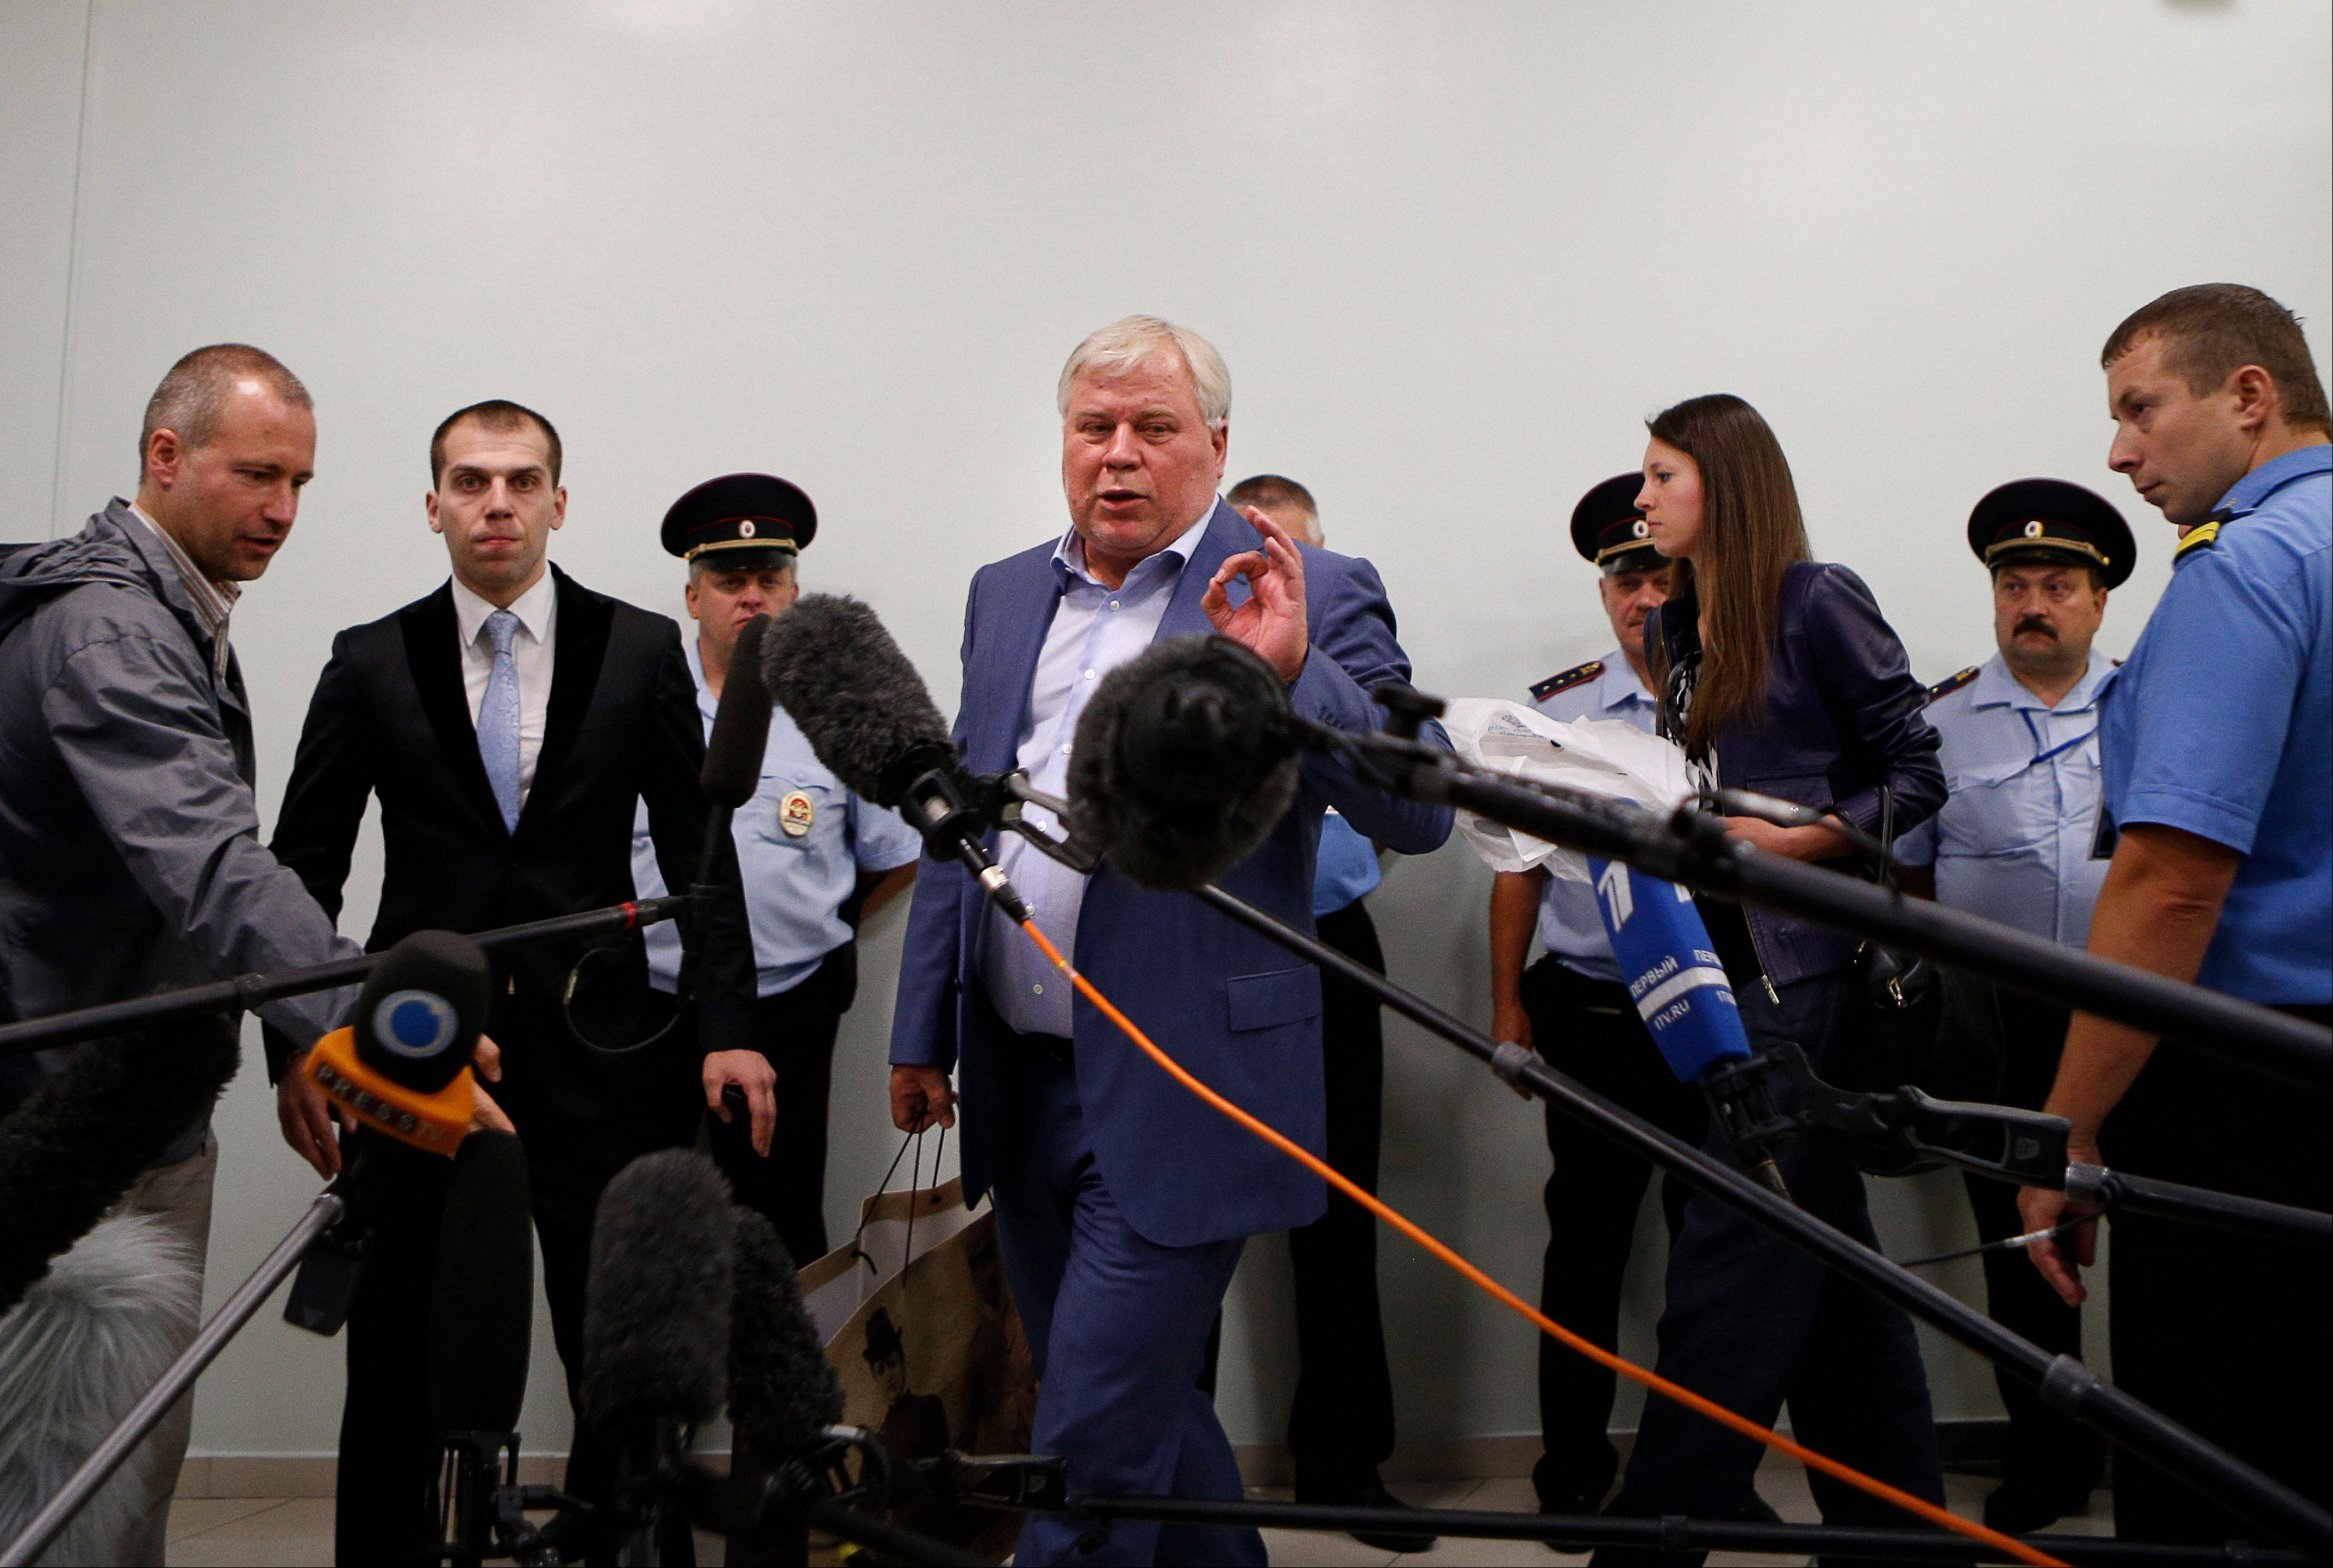 Russian lawyer Anatoly Kucherena speaks to the media after visiting National Security Agency leaker Edward Snowden at Sheremetyevo airport outside Moscow, Russia, Wednesday, July 24, 2013. Congress is advancing sanctions against Russia or any other country offering asylum to Snowden.